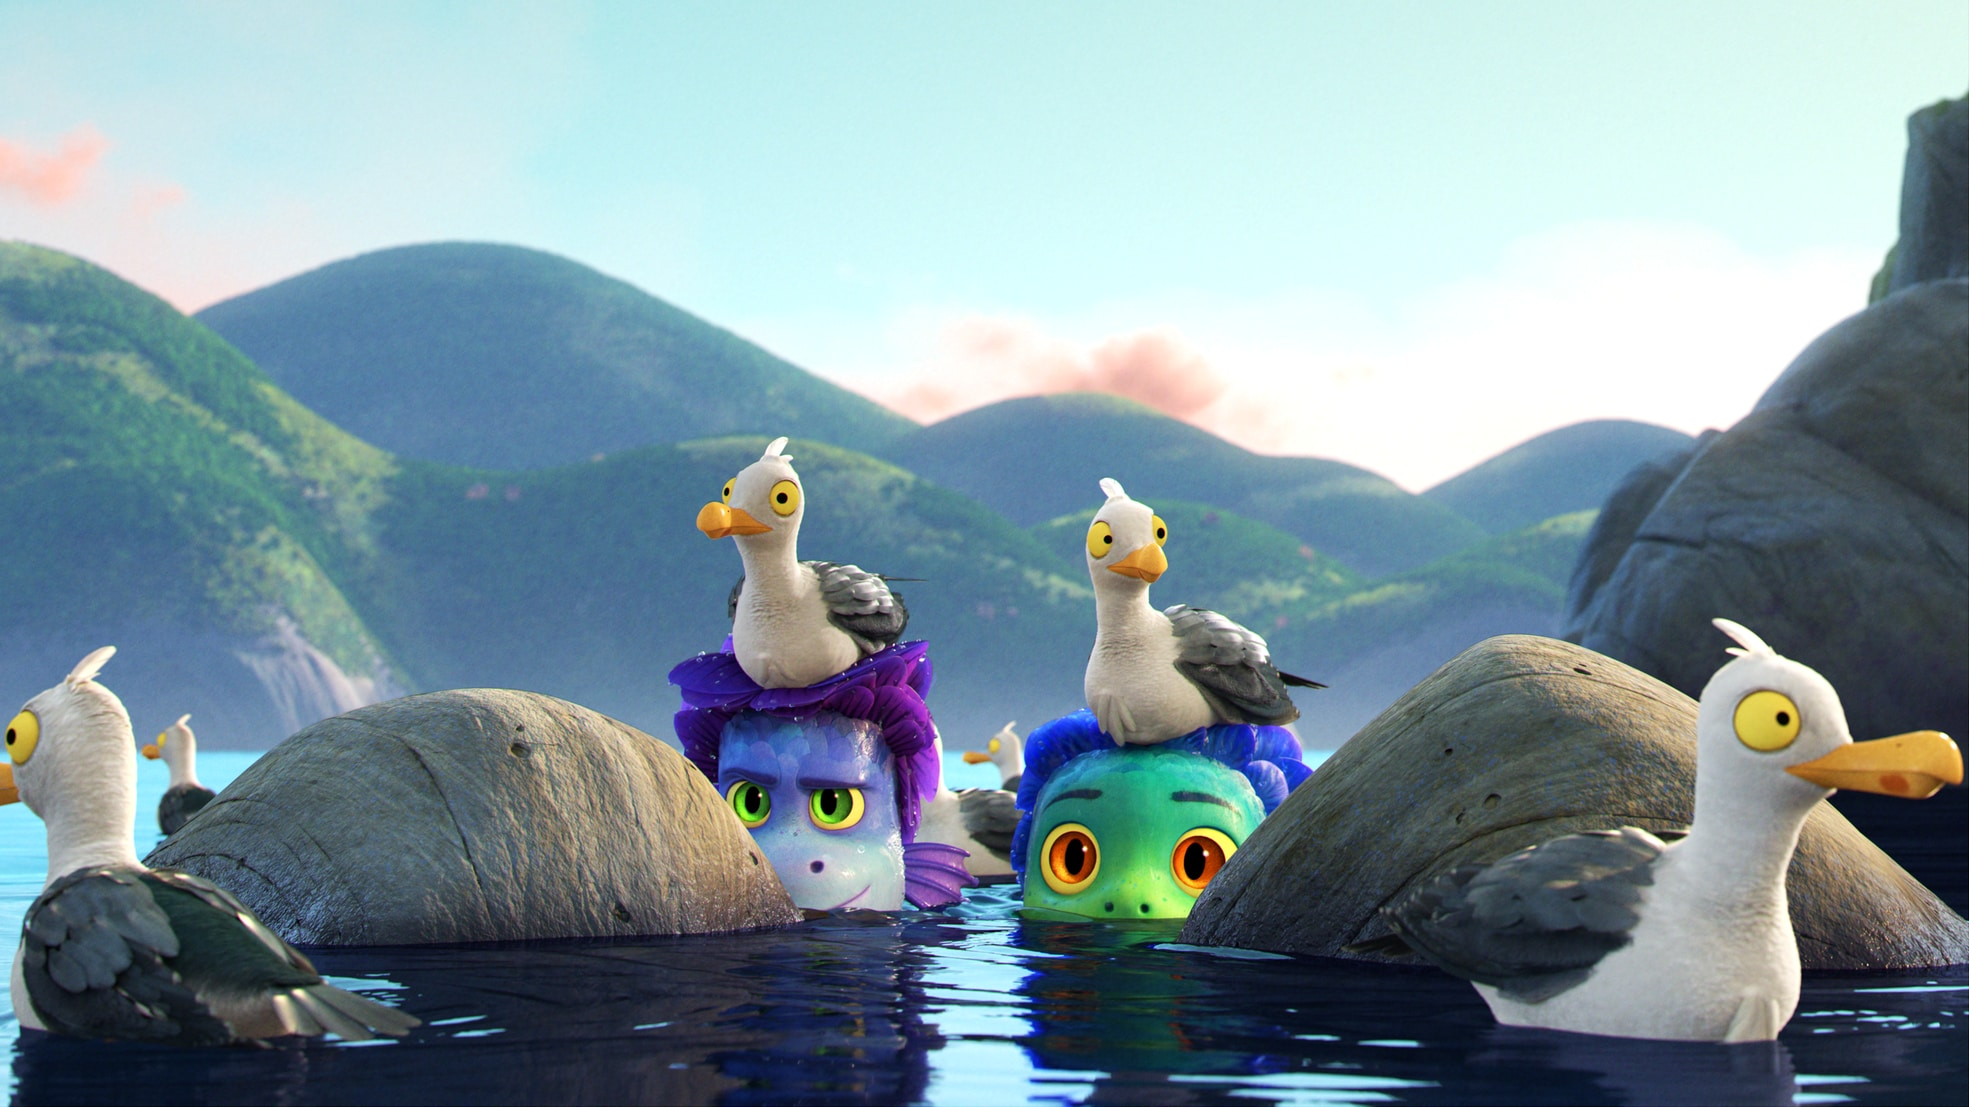 The Animation and Effects Behind Pixar's Luca, Now Streaming